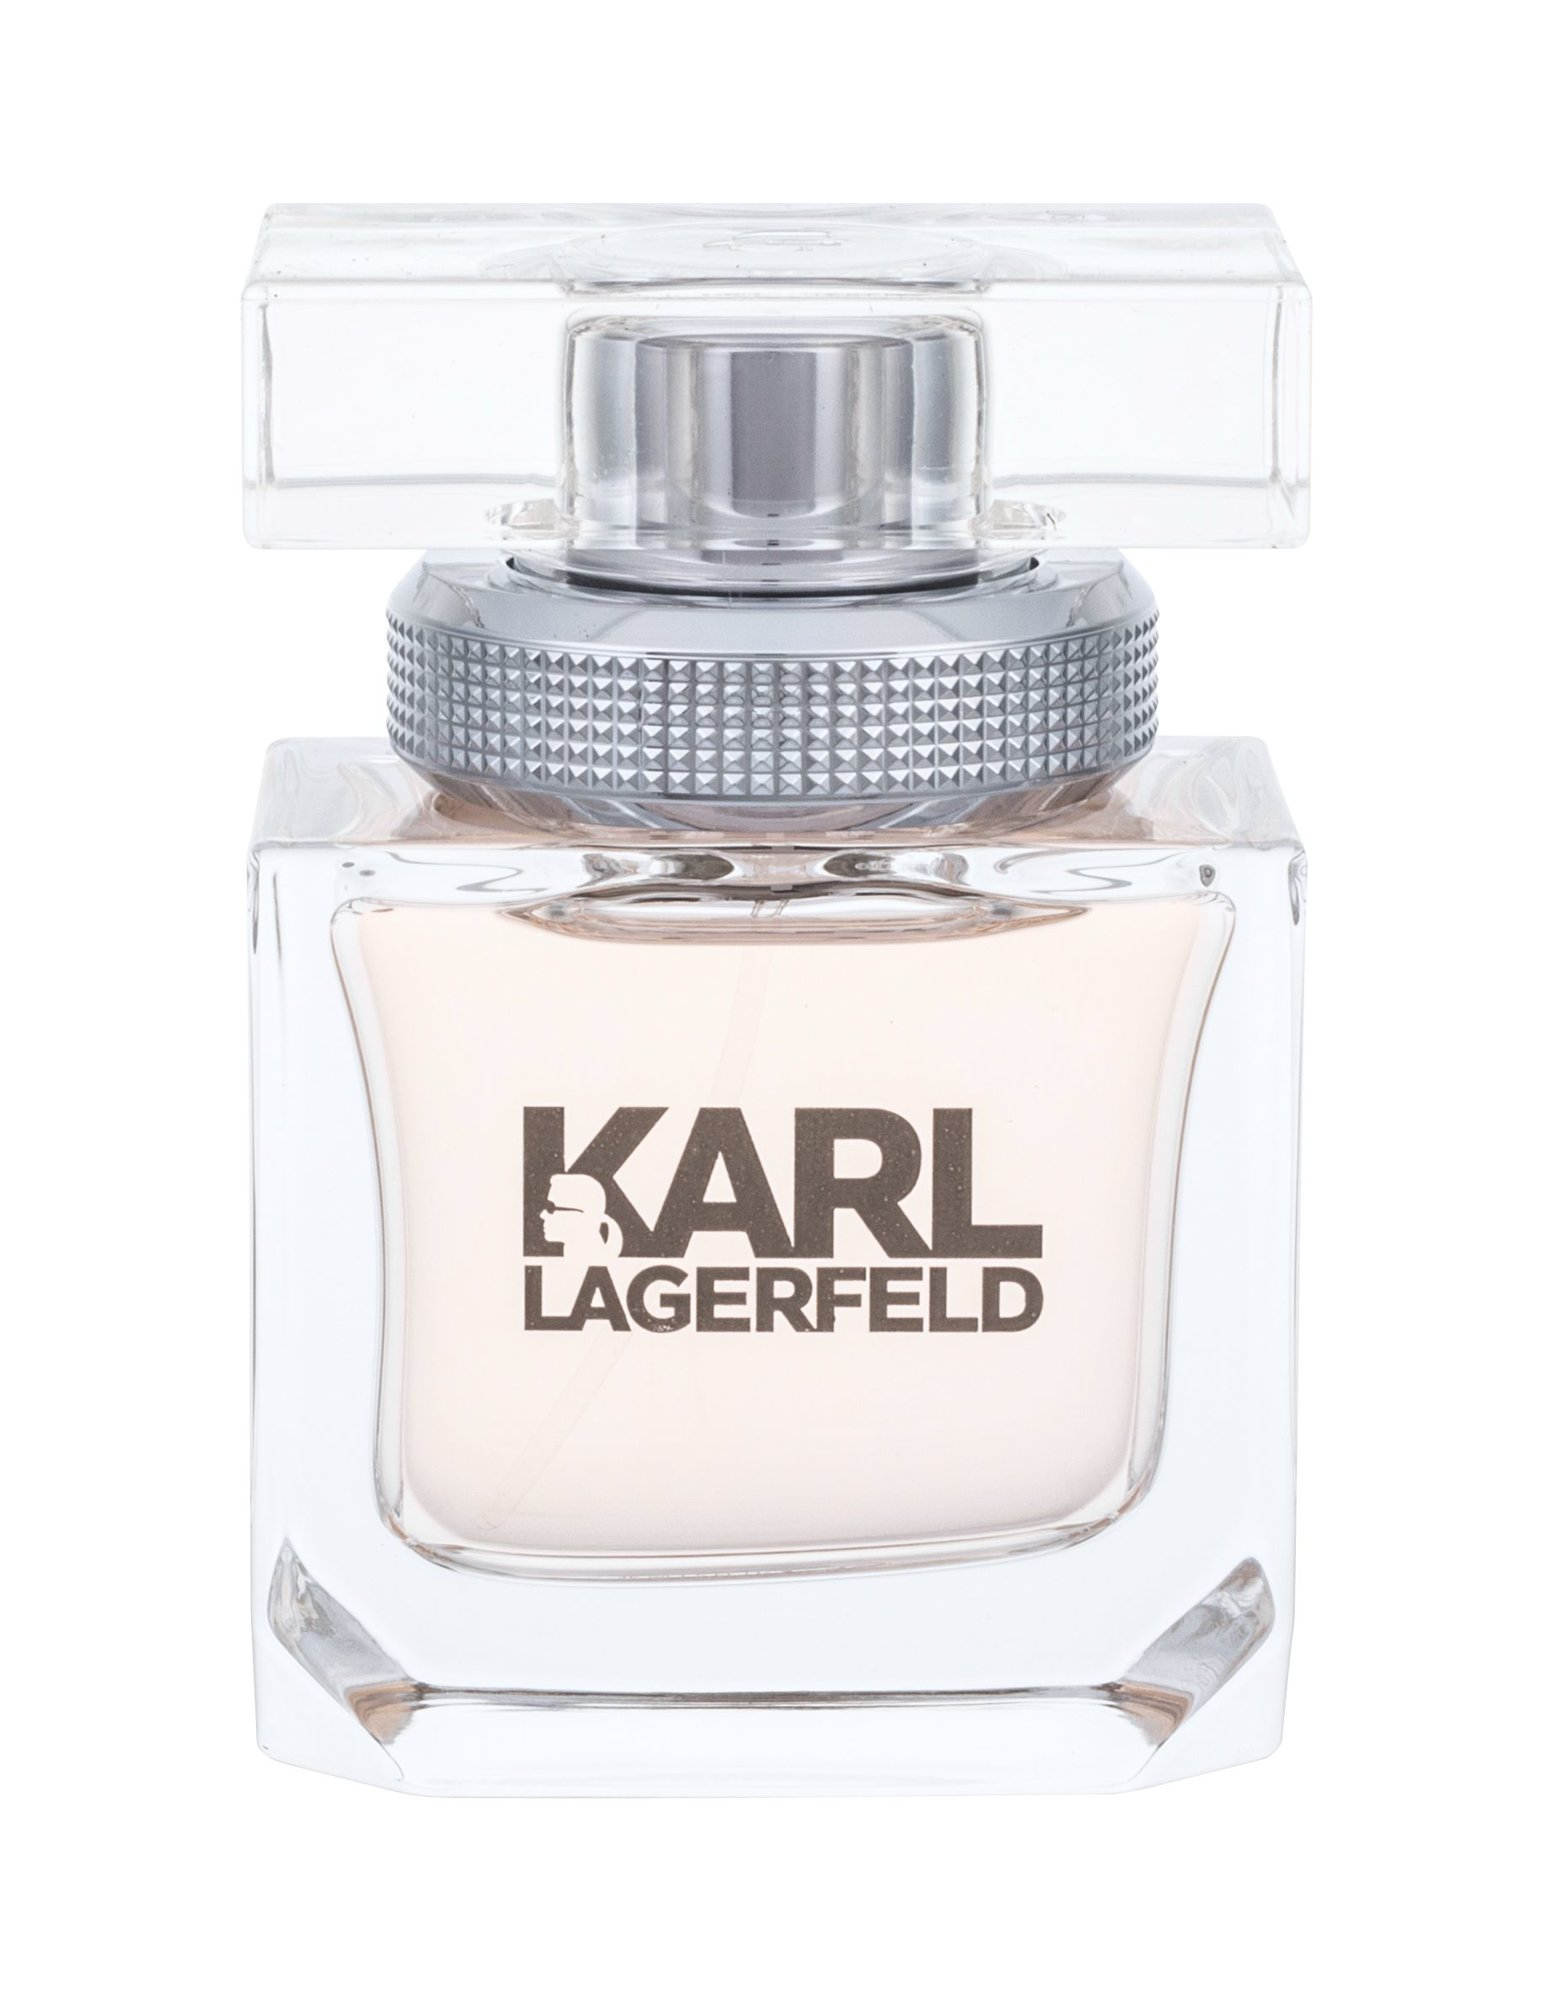 Karl Lagerfeld Karl Lagerfeld for Her (W)